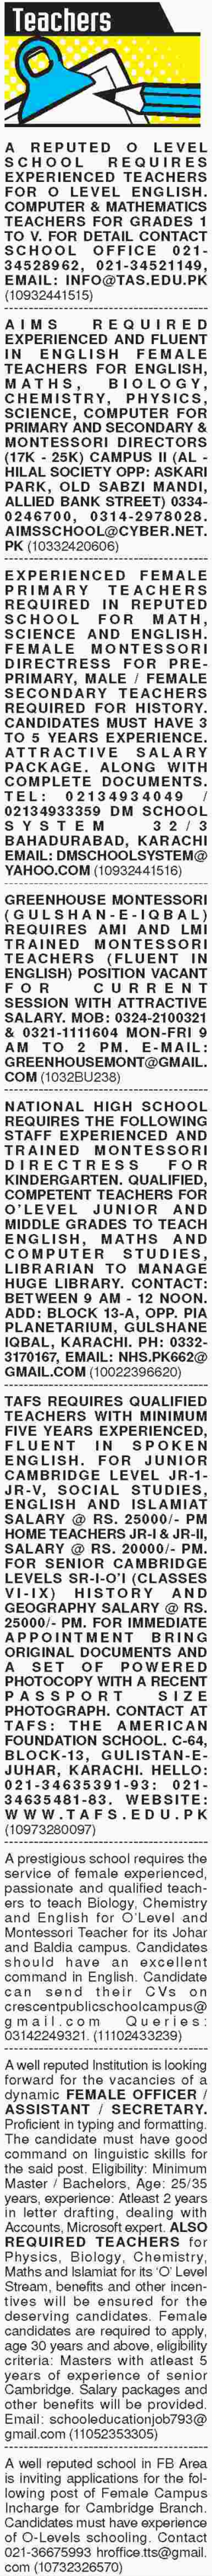 Teacher wanted in Sindh